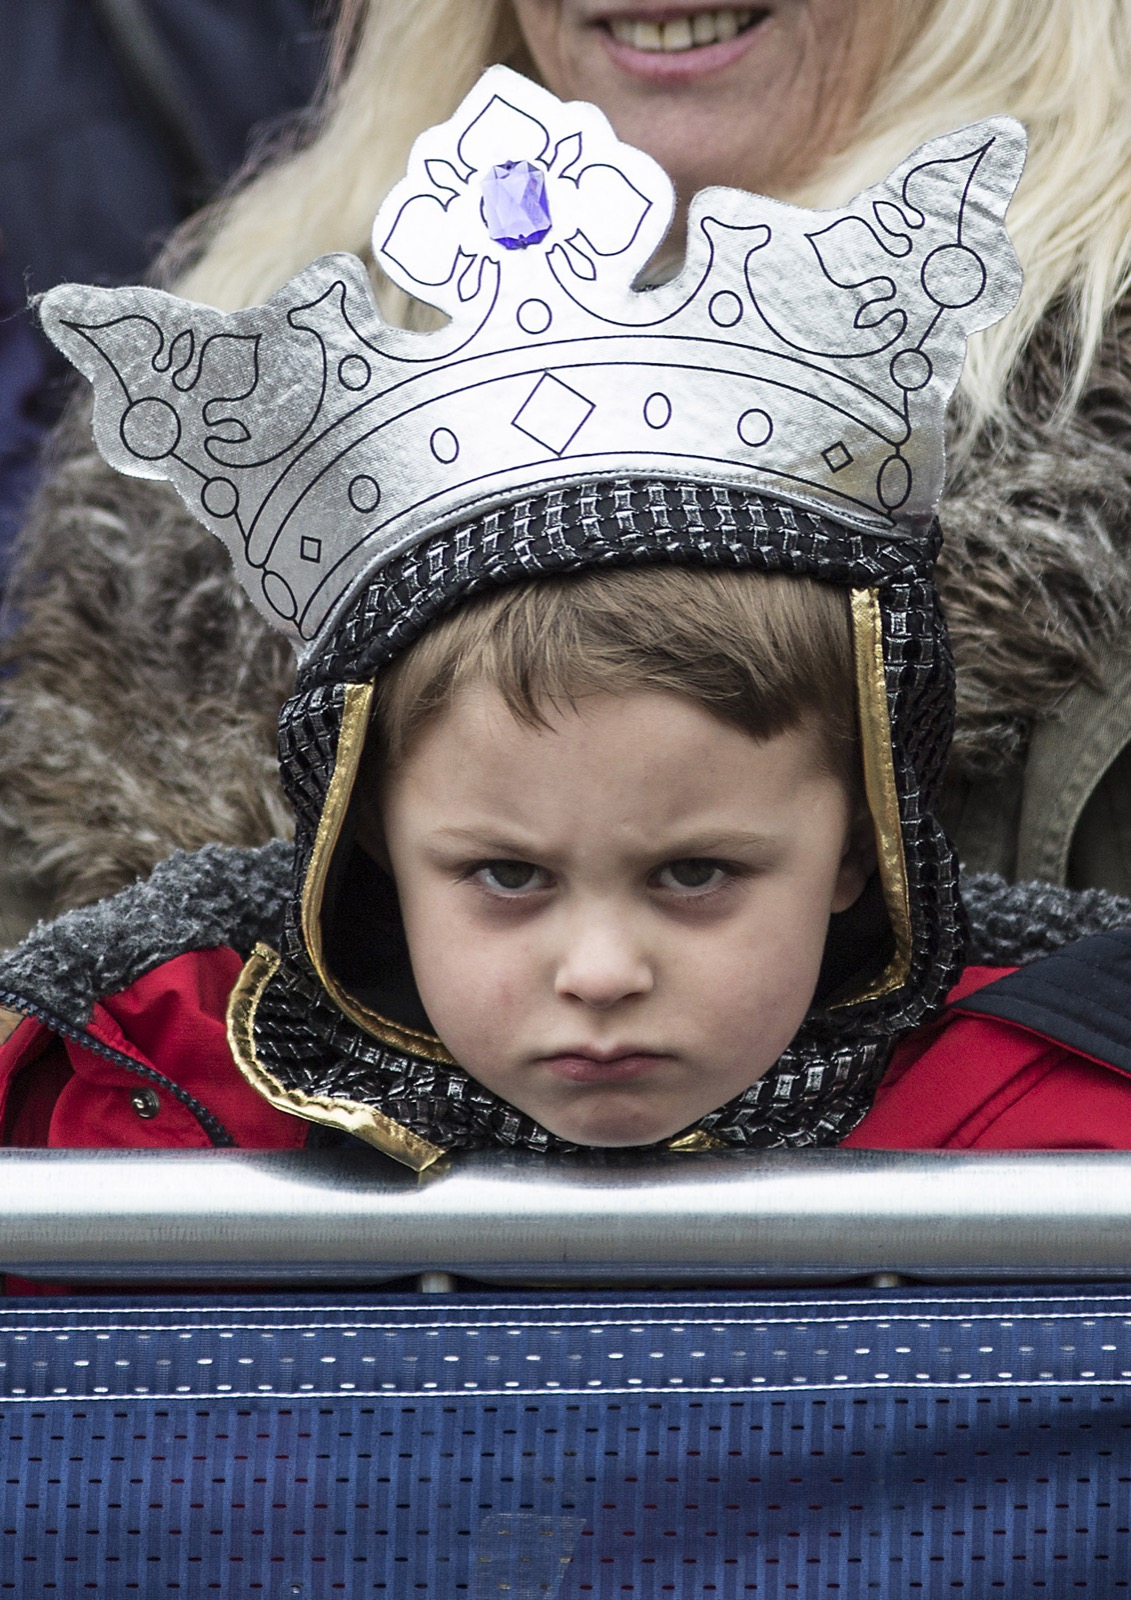 Four-year old Torin Weston, dressed as Richard III, waits with his grandmother outside Leicester Cathedral during the reinterment ceremony for King Richard III. Richard Pohle/WPA Pool/Getty Images